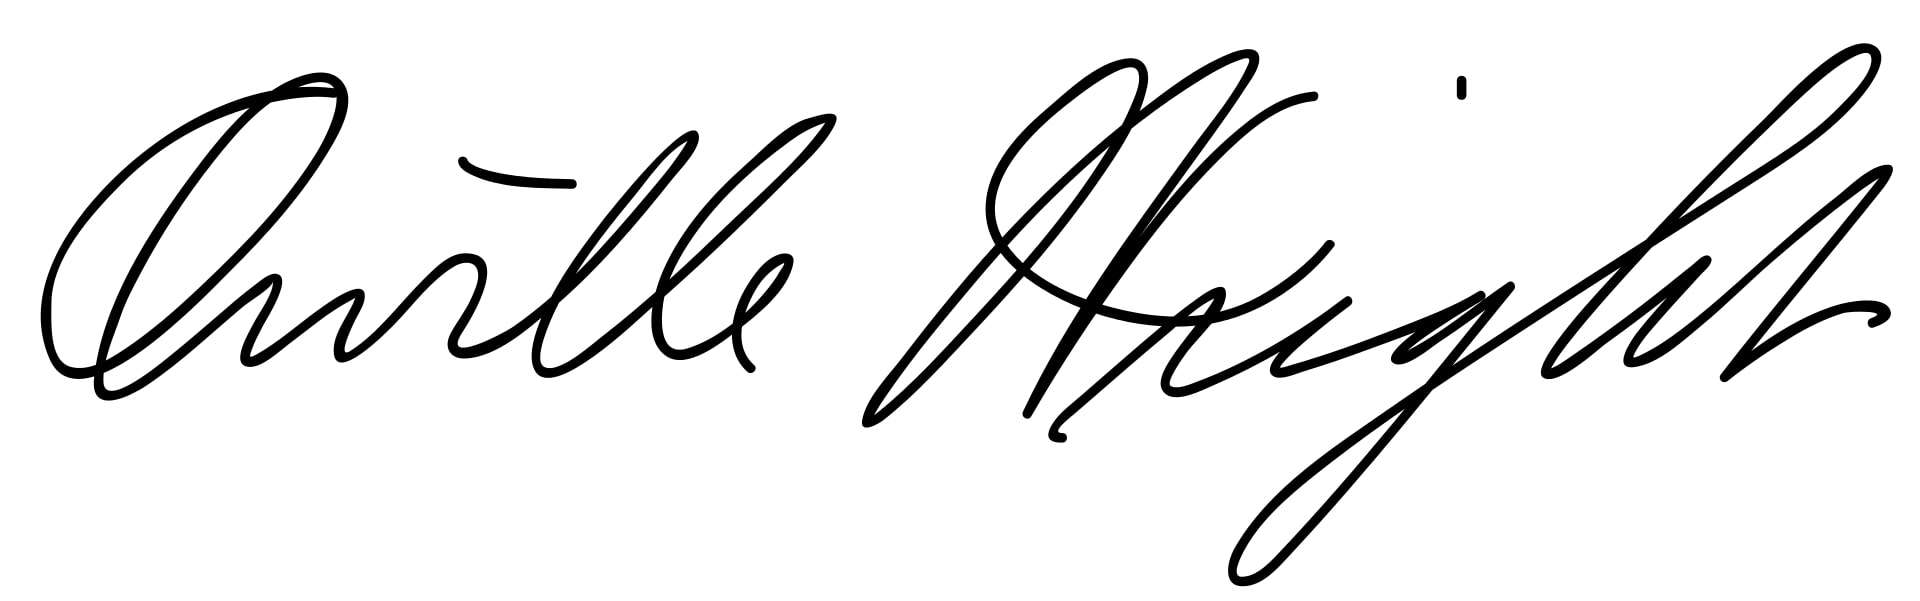 Wright brothers Signature